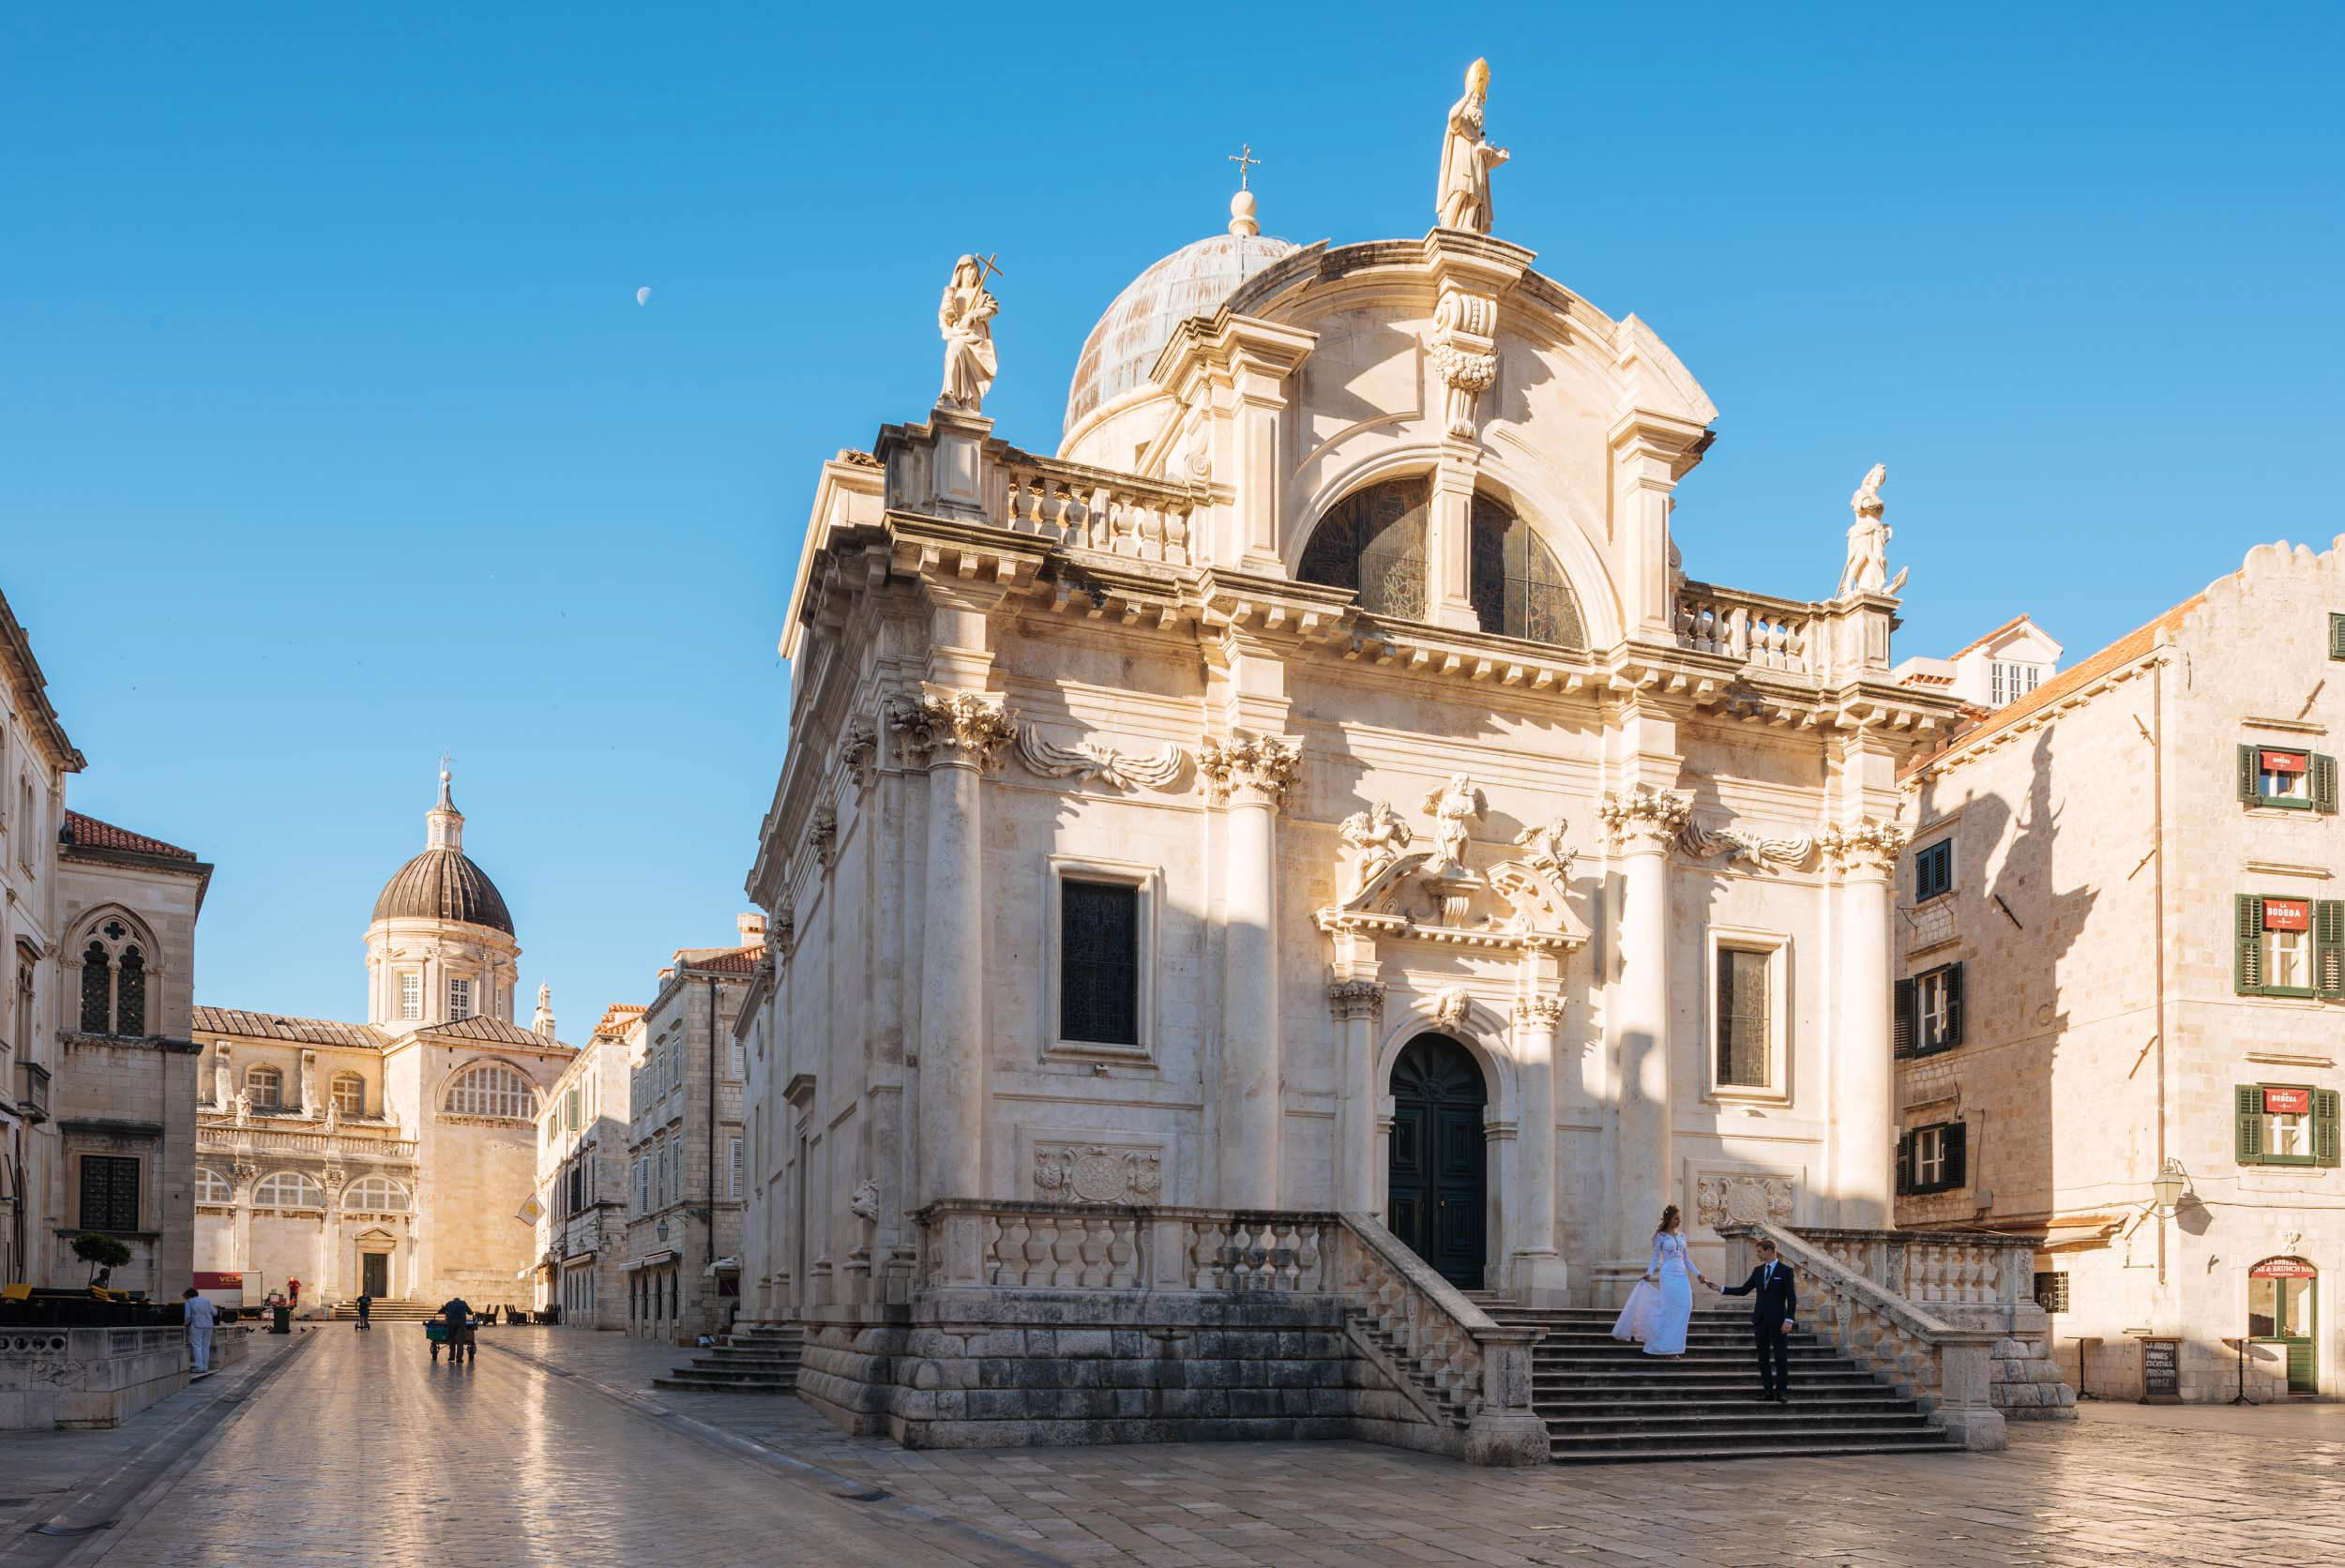 church-architecture-dubrovnik-croatia-balkan-travel-city-008